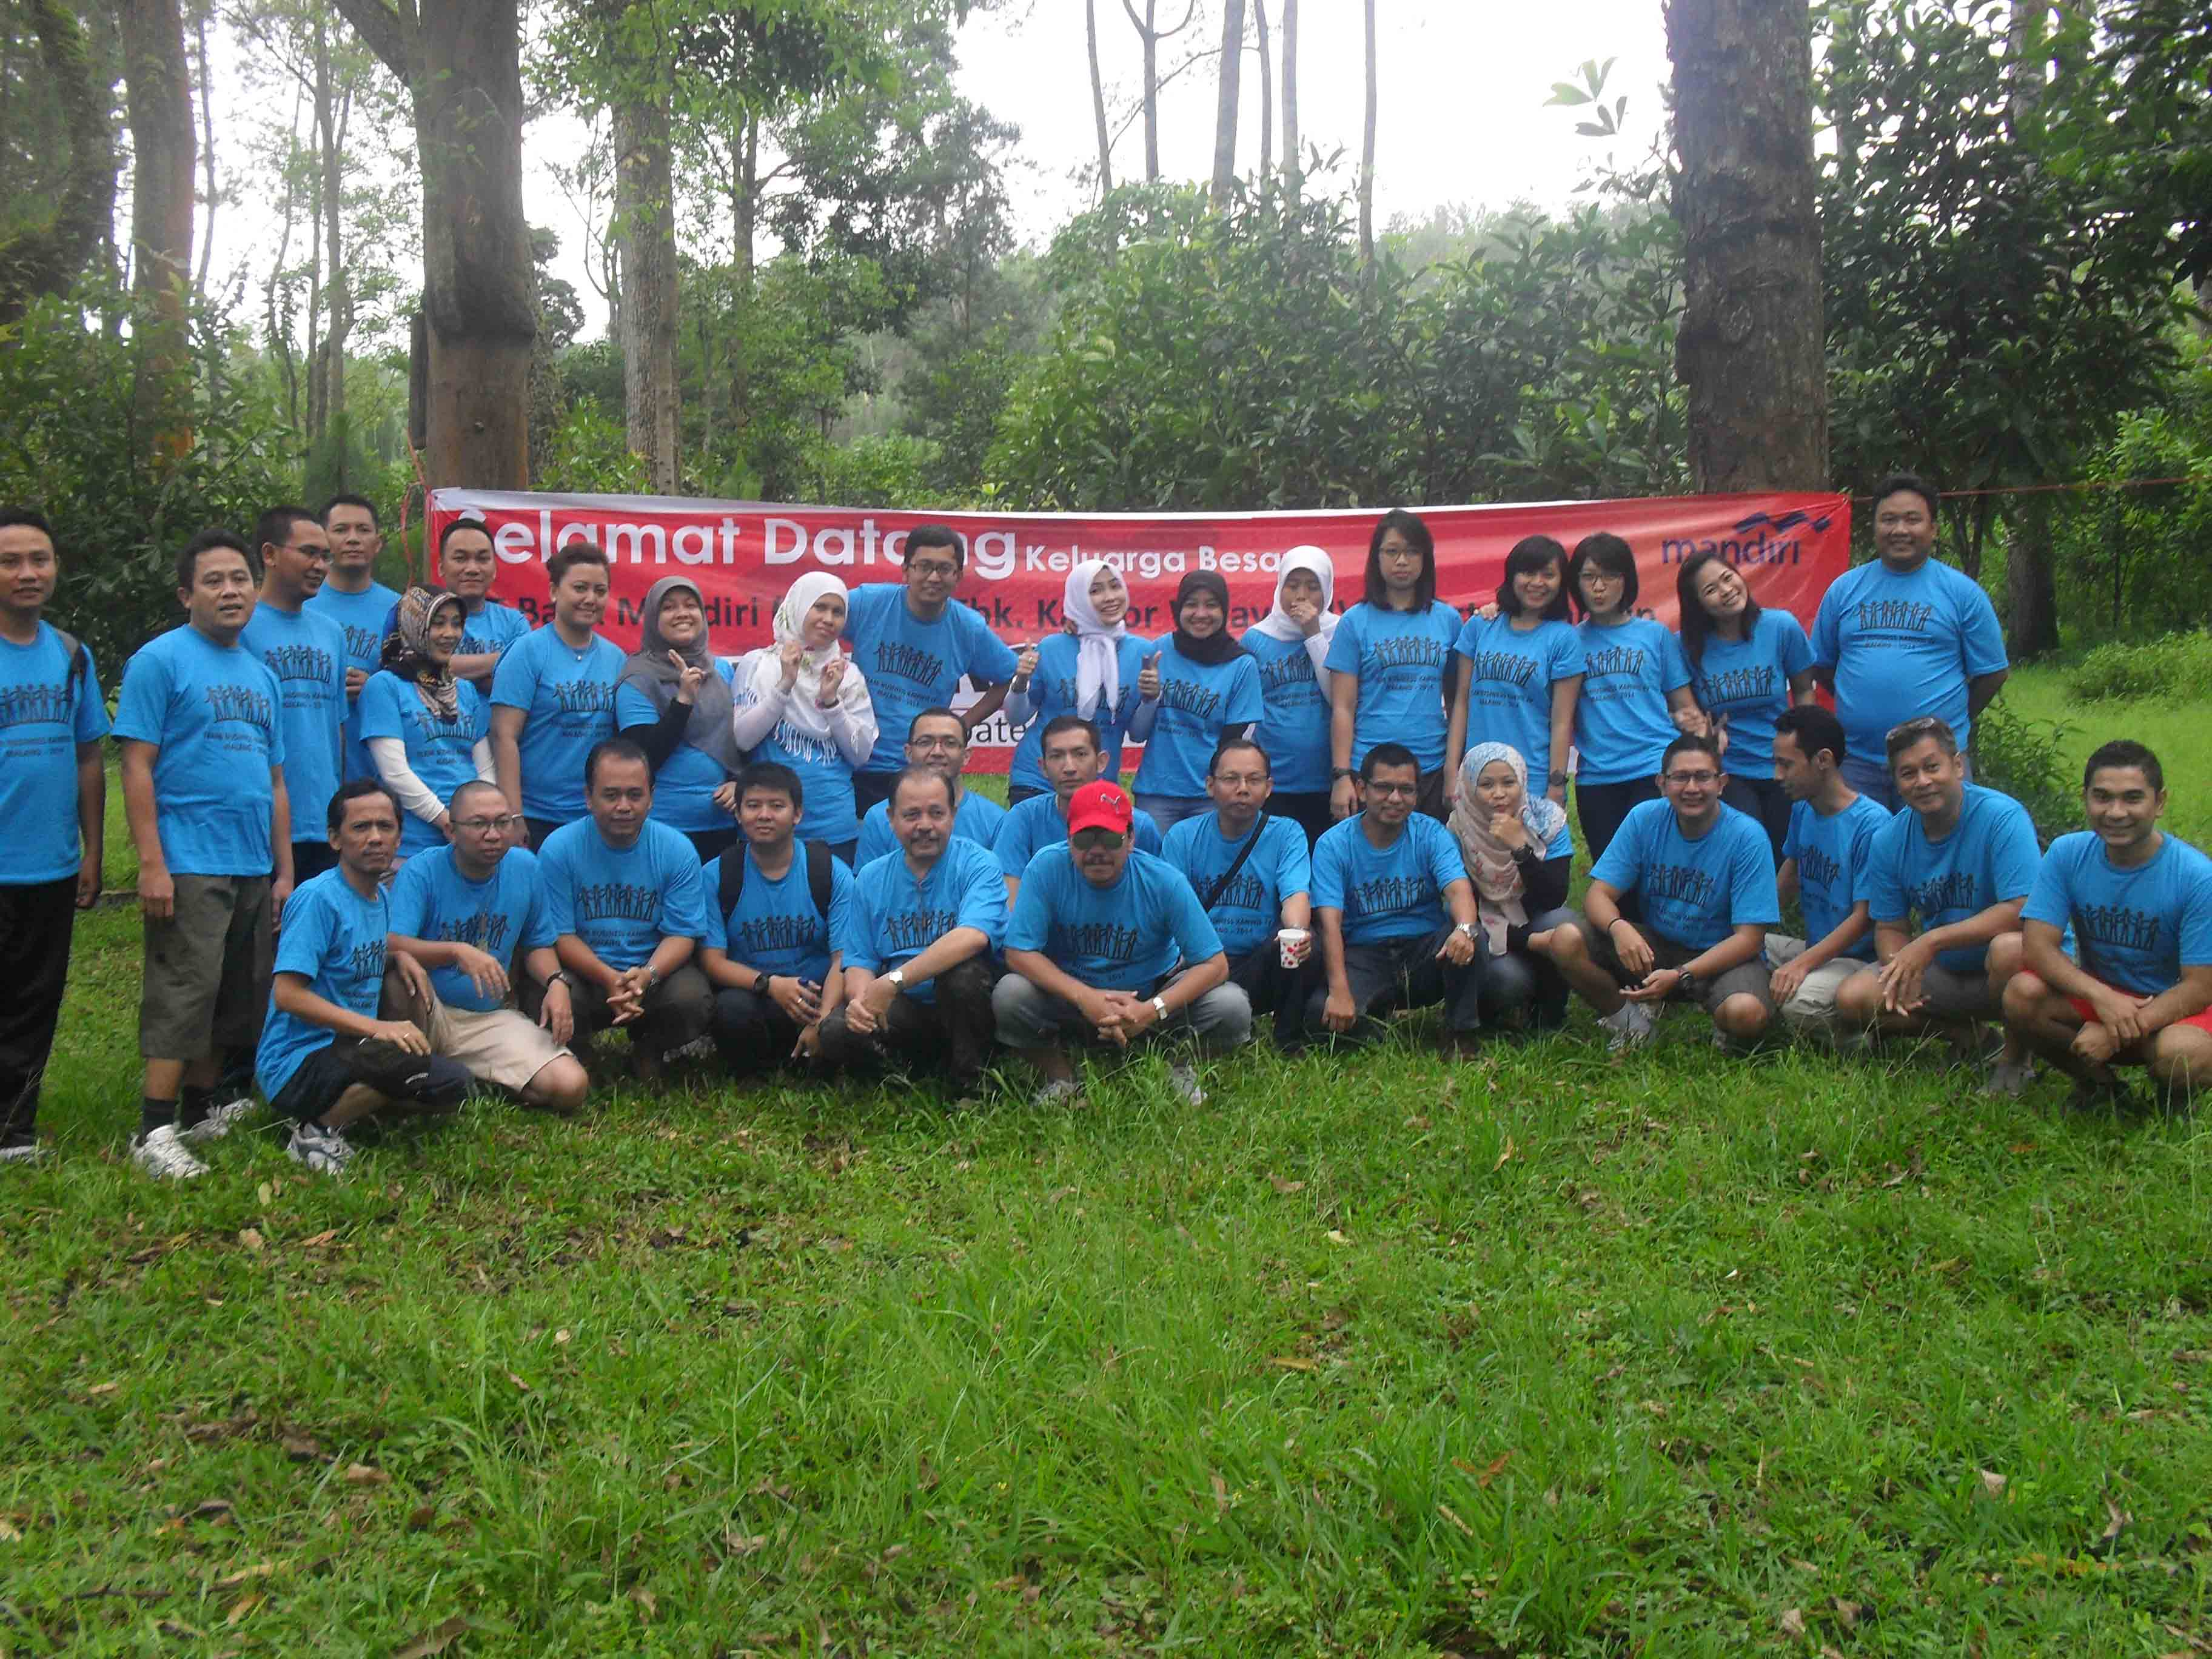 paket-outbound-outbound-murah-outbound-di-malang-bank-mandiri-6-081-231-938-0111.jpg